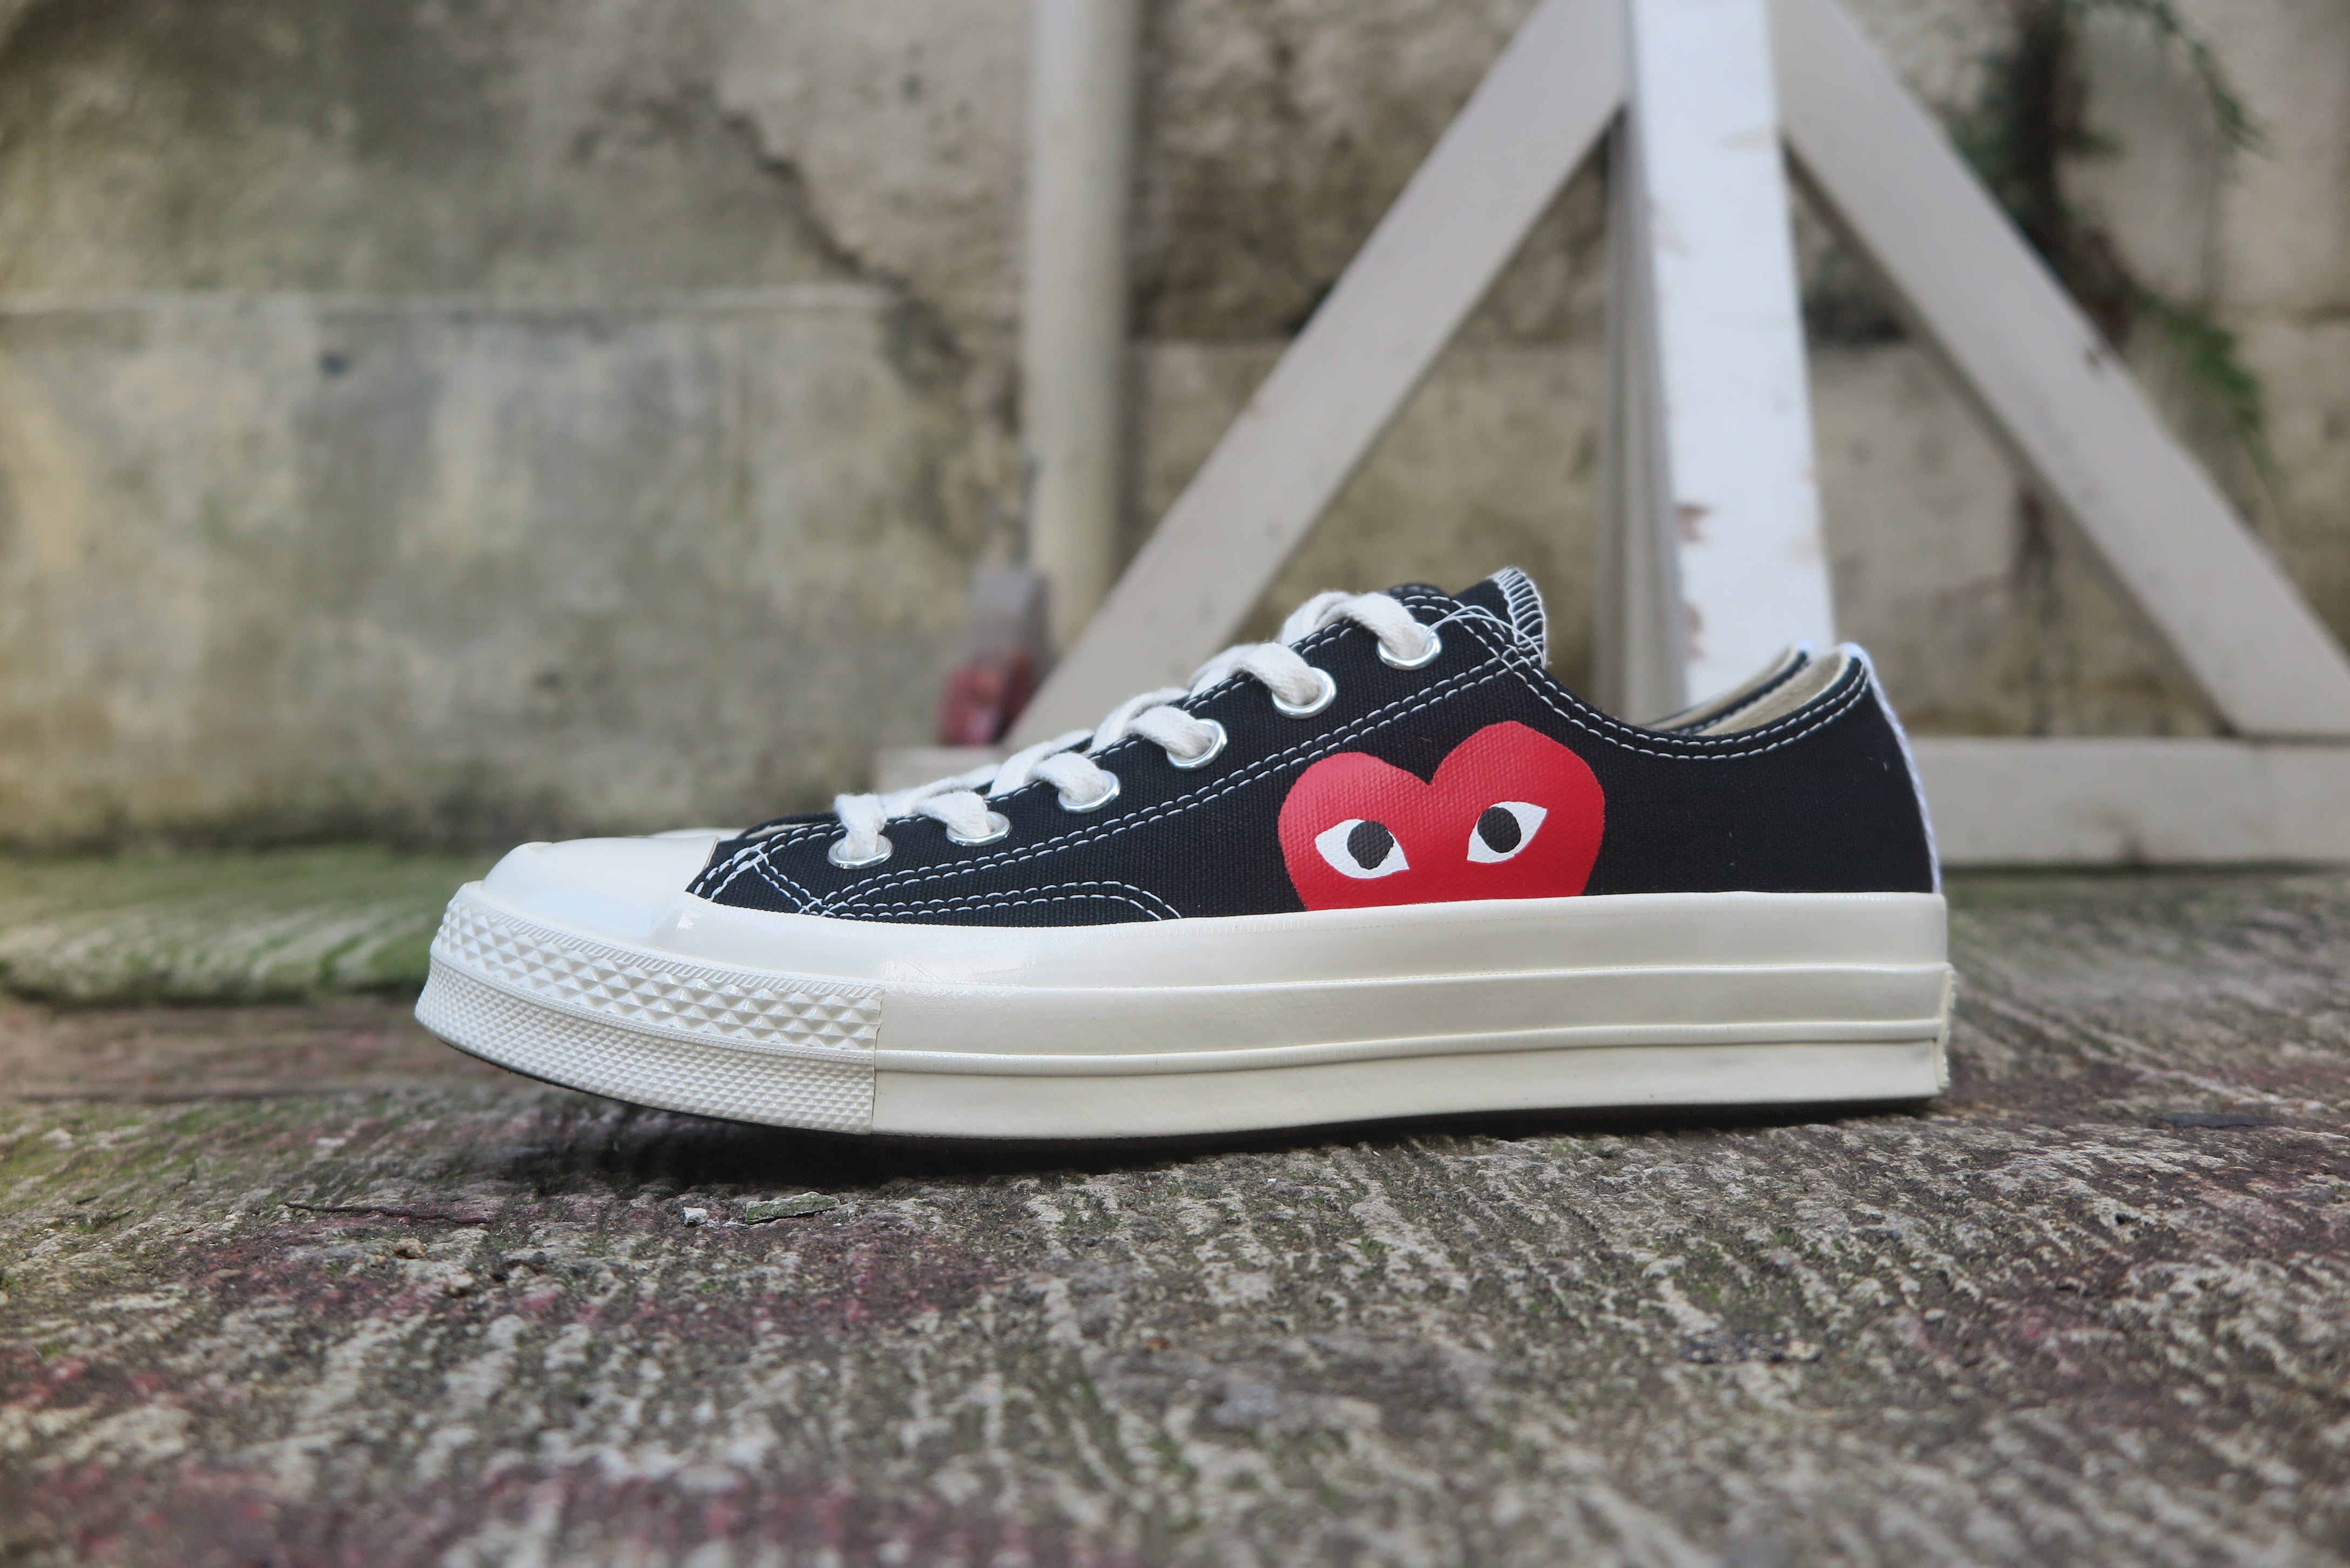 Play Comme des Garçons x Converse Red Heart Chuck Taylor All Star '70 Low - Black #150206C-Preorder Item-Navy Selected Shop